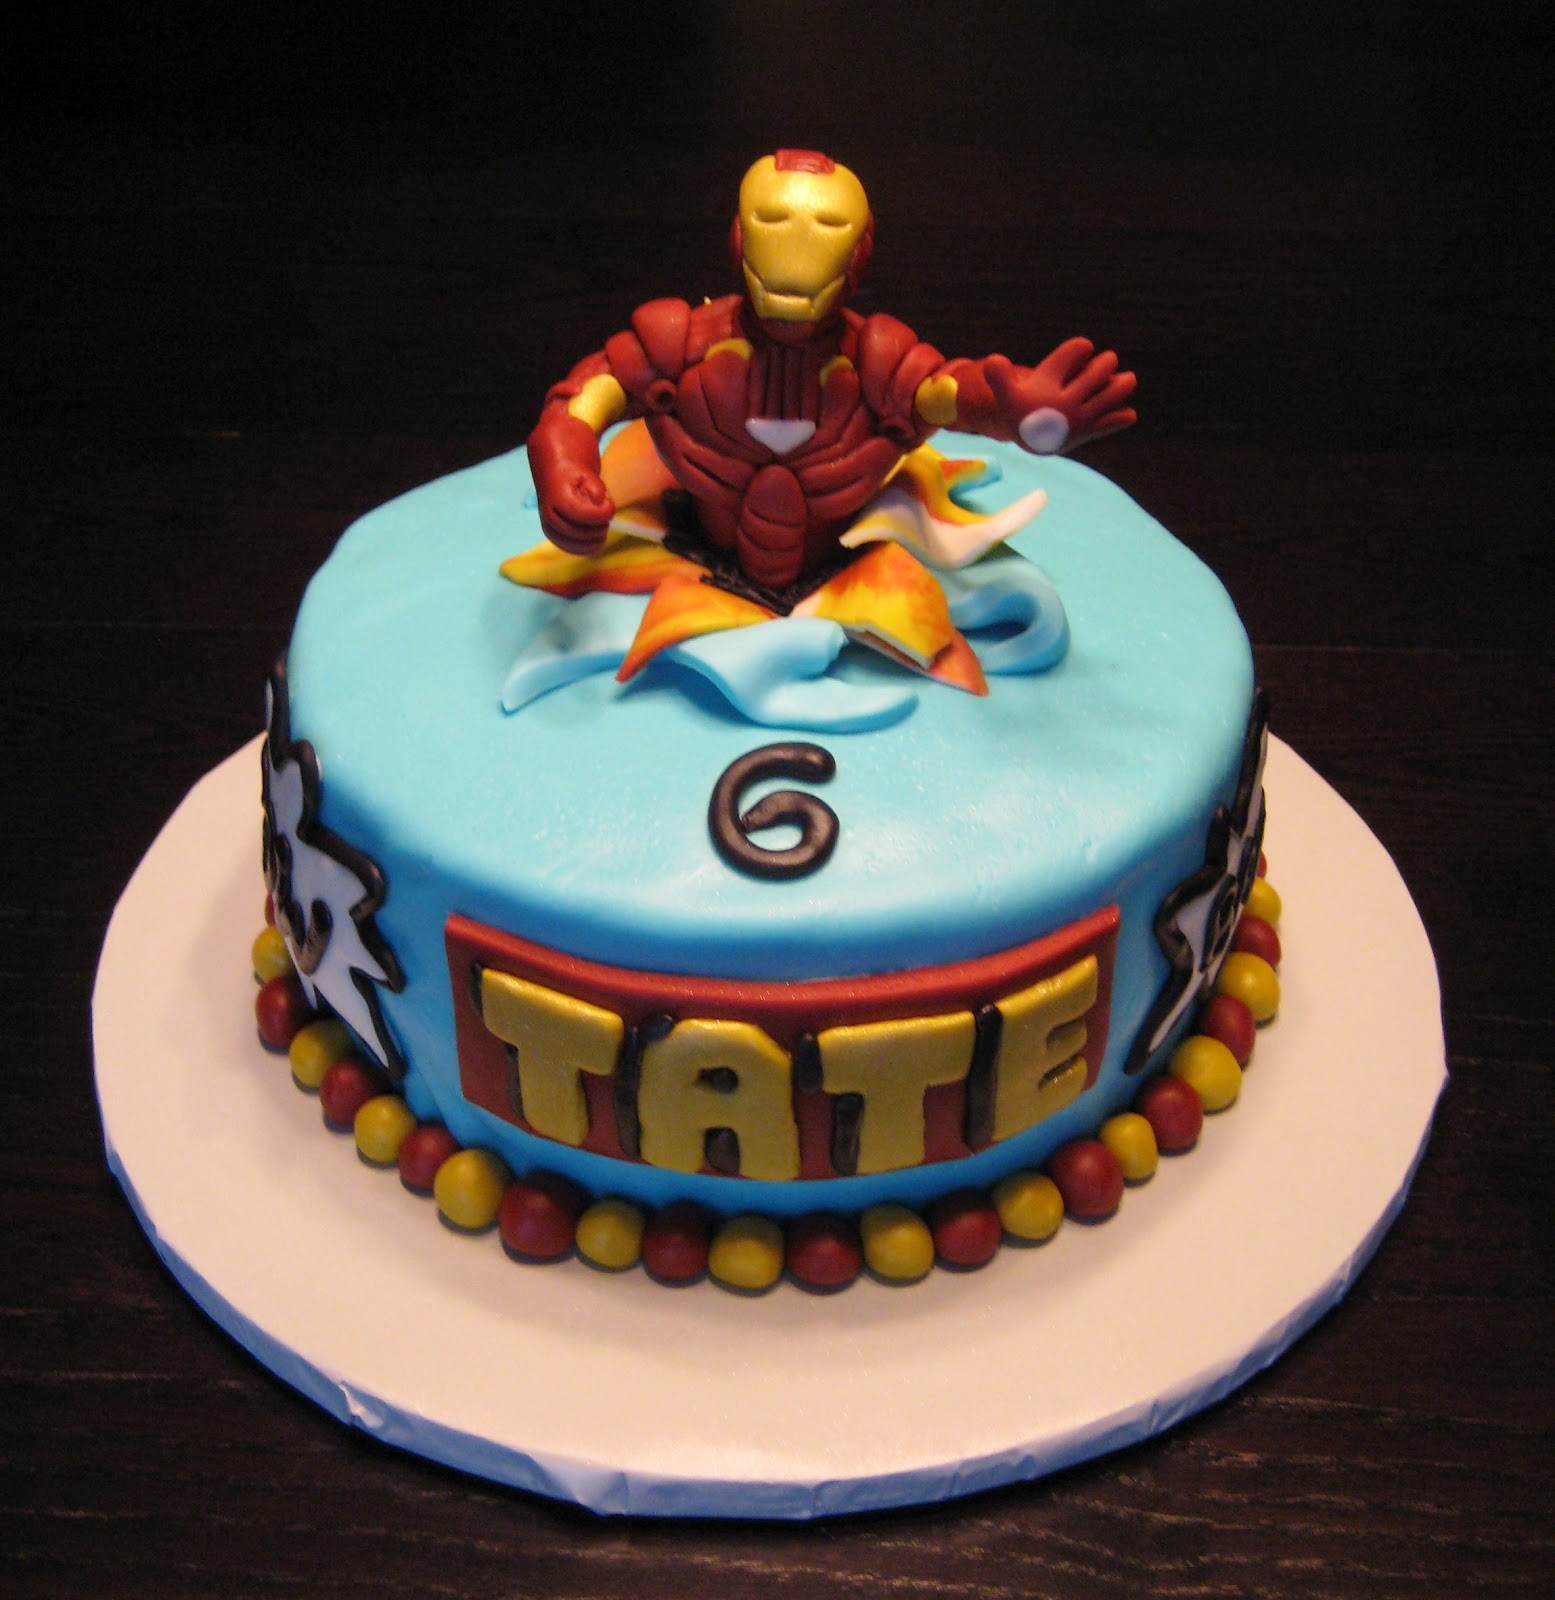 Awe Inspiring Iron Man Cakes Decoration Ideas Little Birthday Cakes Funny Birthday Cards Online Inifofree Goldxyz